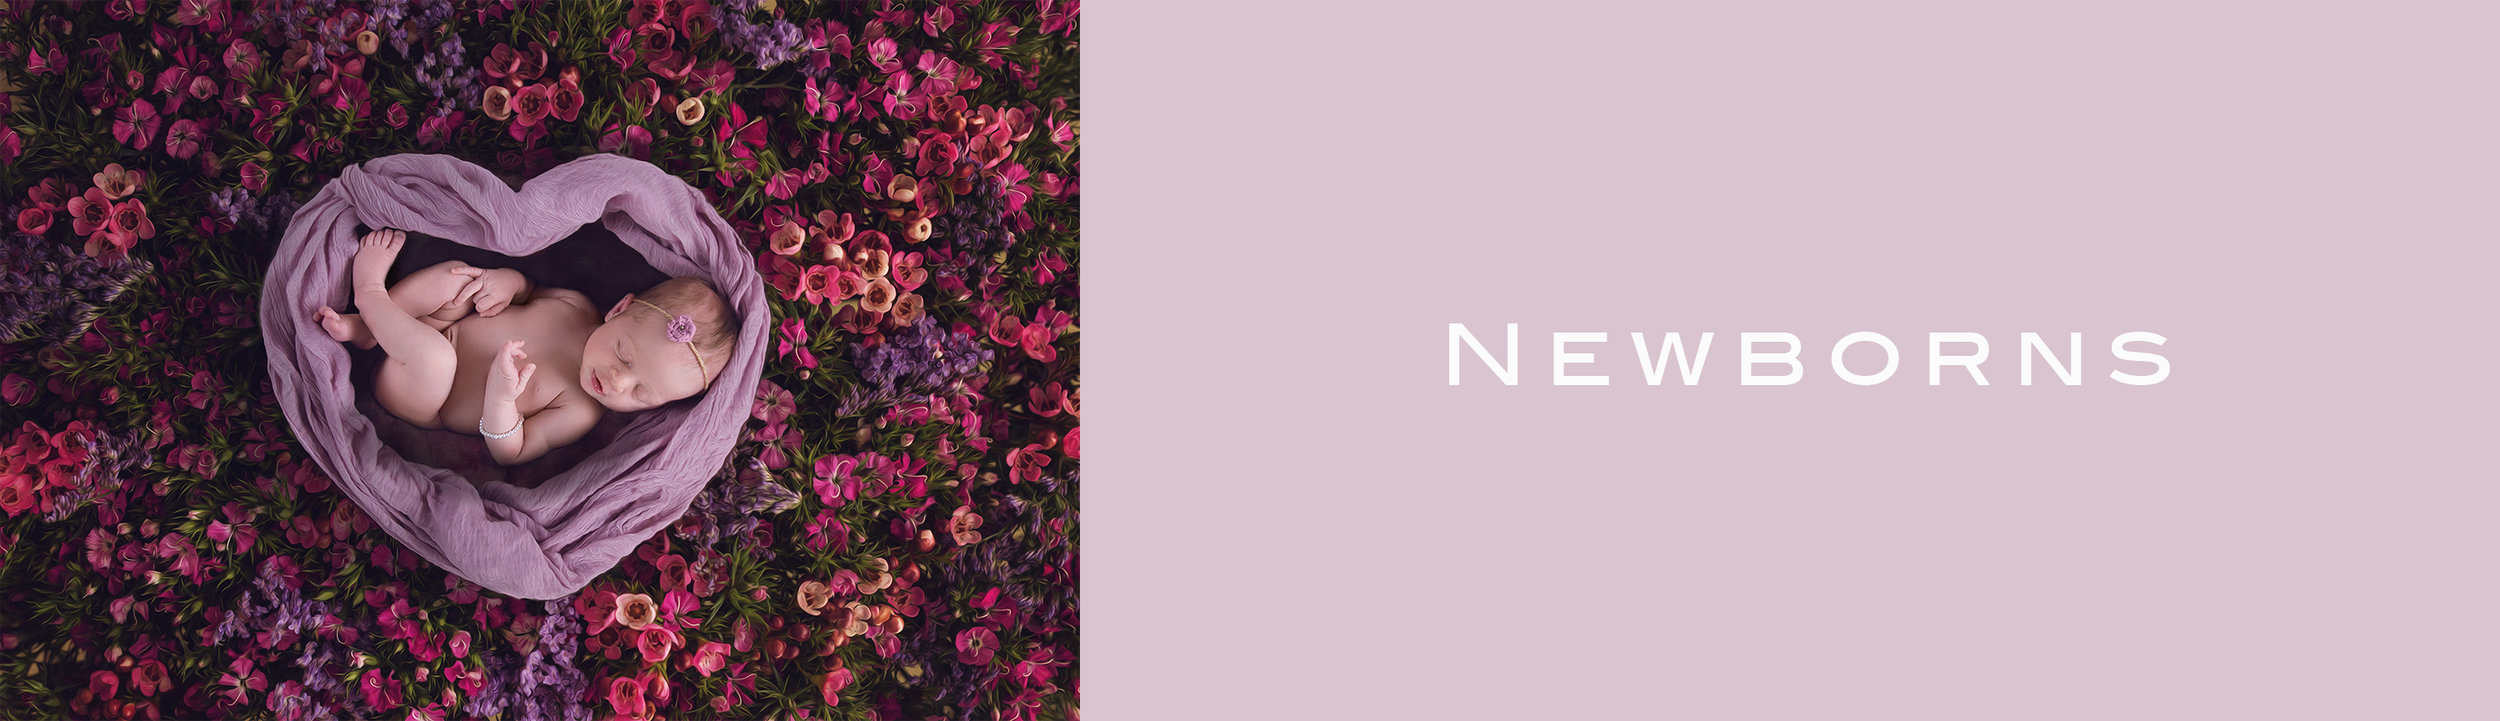 Newborns Header.jpg